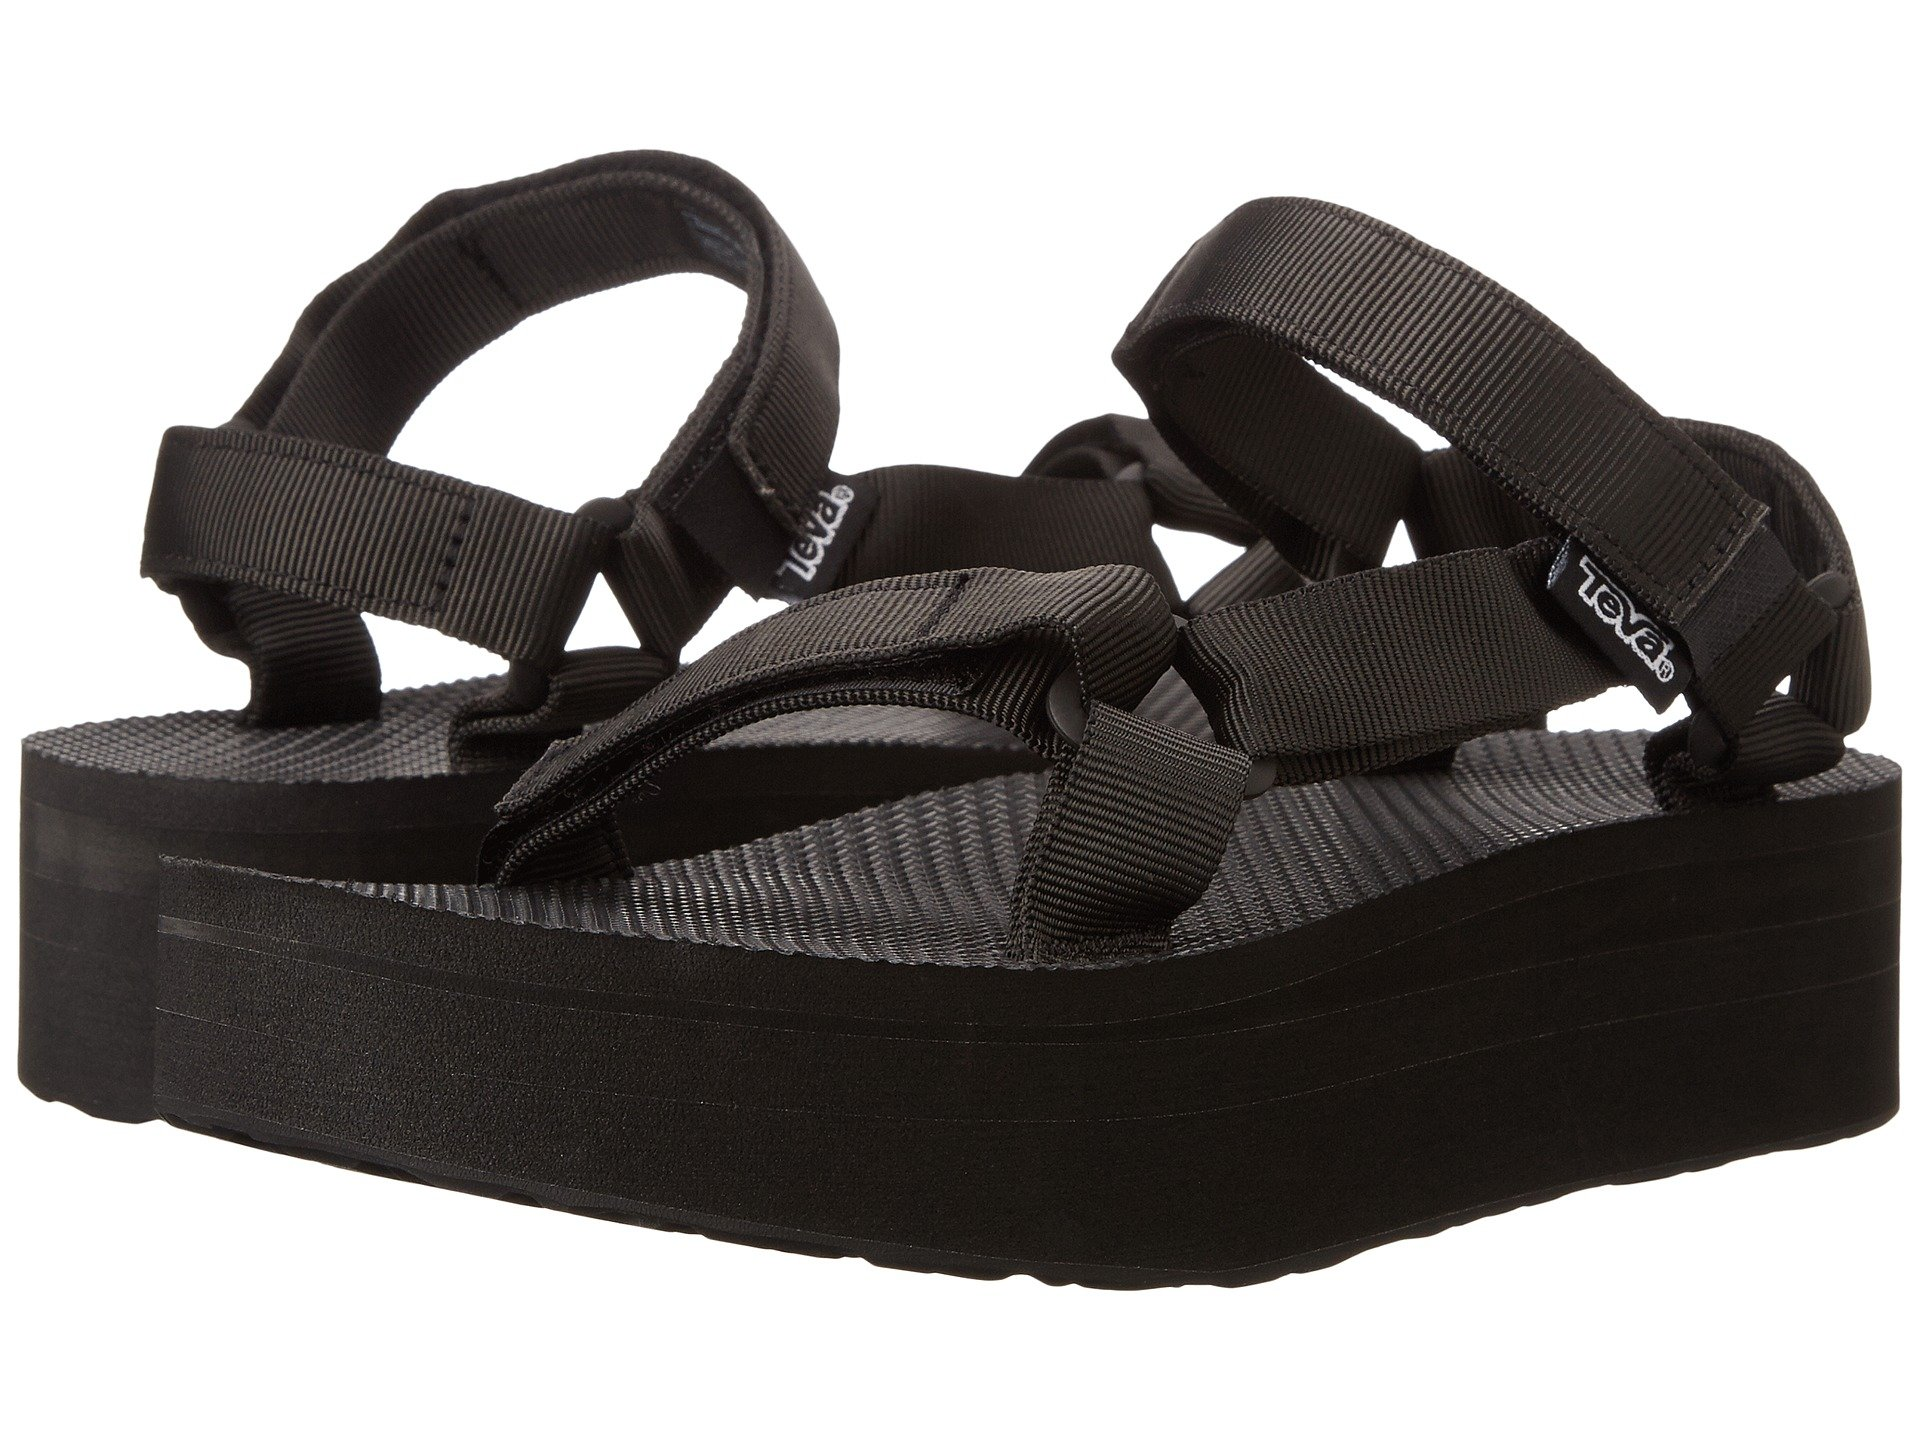 b55229b61 Women s Teva Sandals + FREE SHIPPING